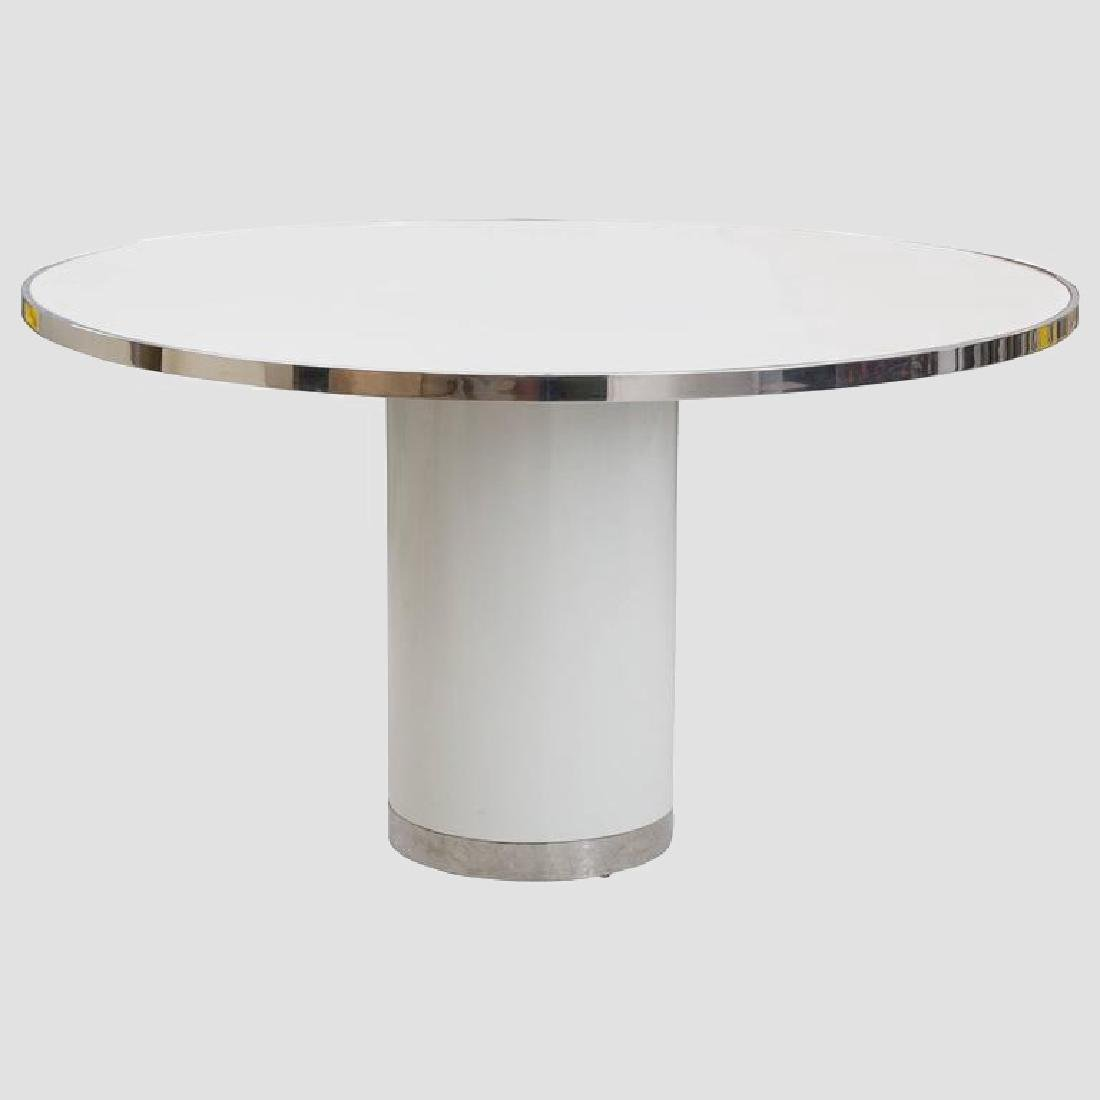 Table by Stanley J. Friedman for Brueton